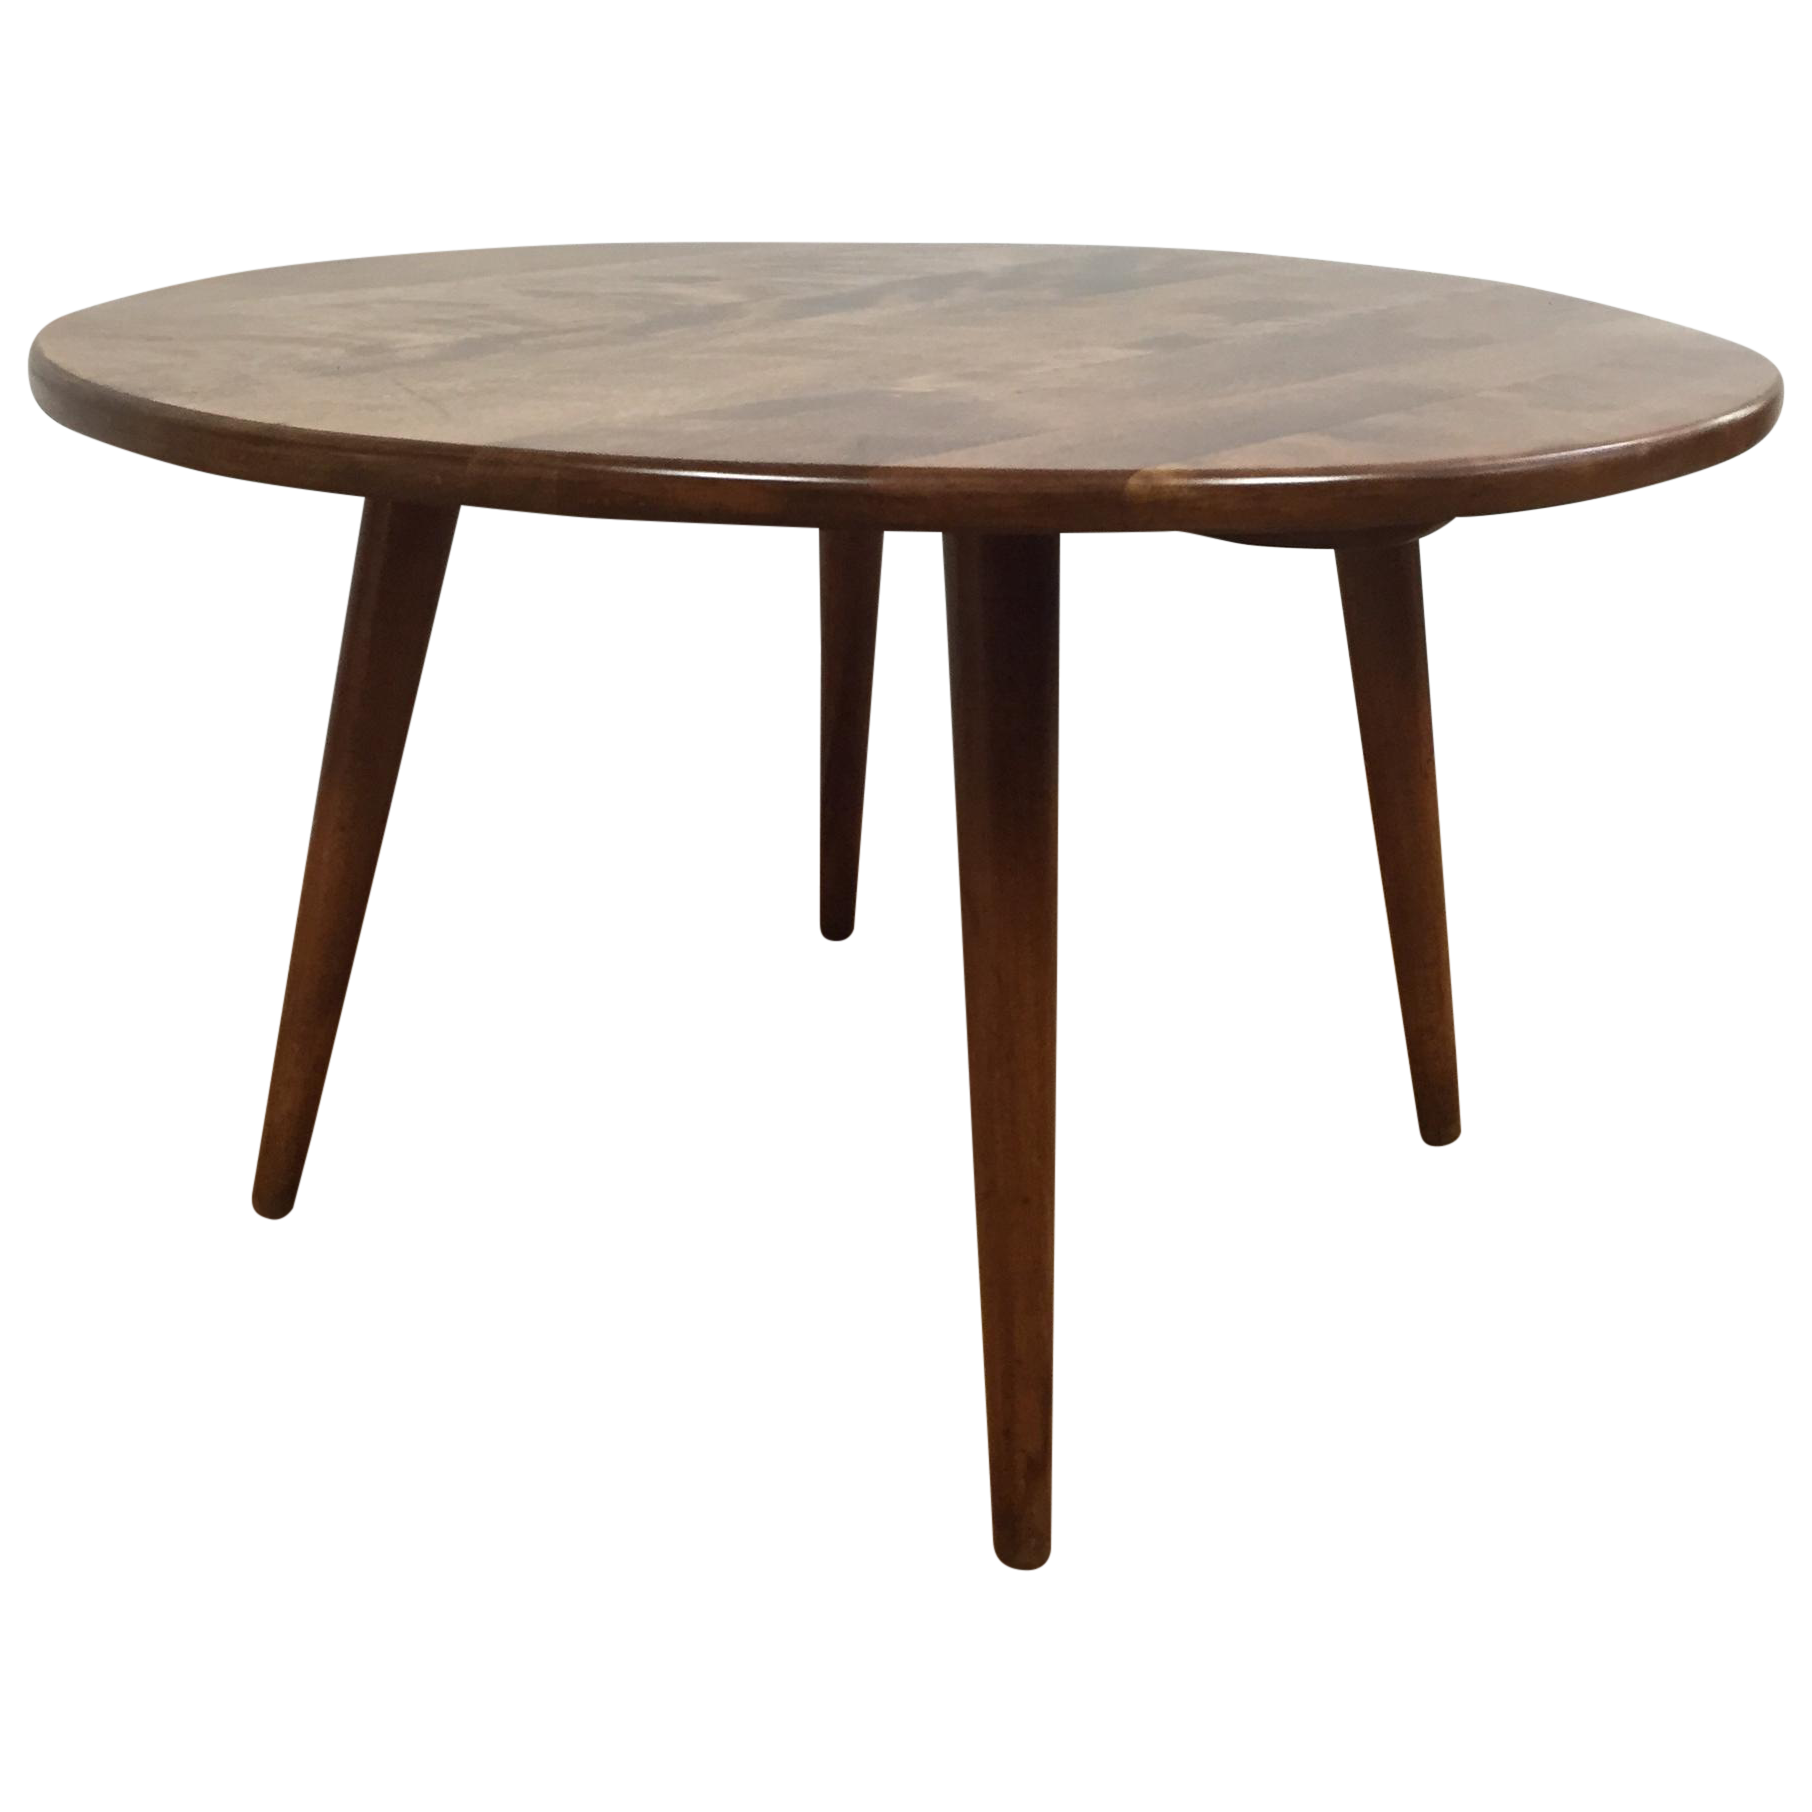 Wegner Ch008 Coffee Table: McCobb Style Round Occasional Table